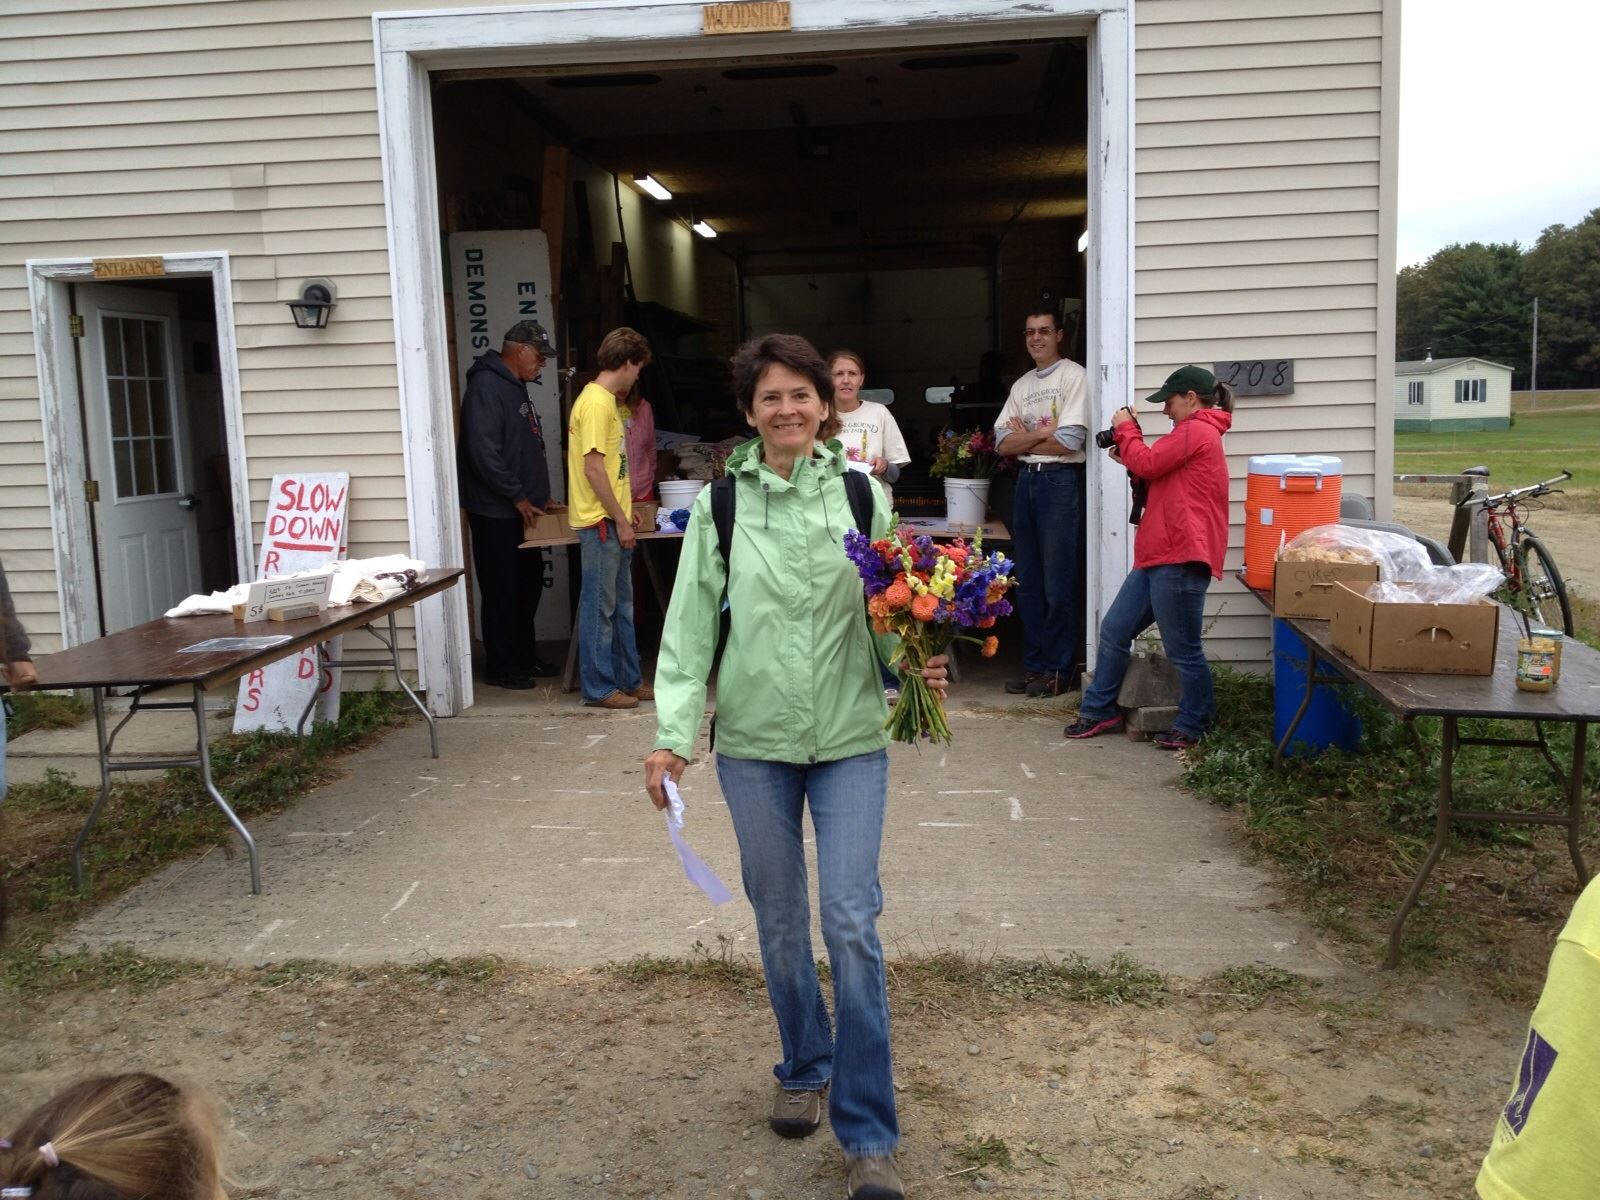 Congrats Carol Manley - first in your age group at Common Ground 5K Photos shared by Ron Haney